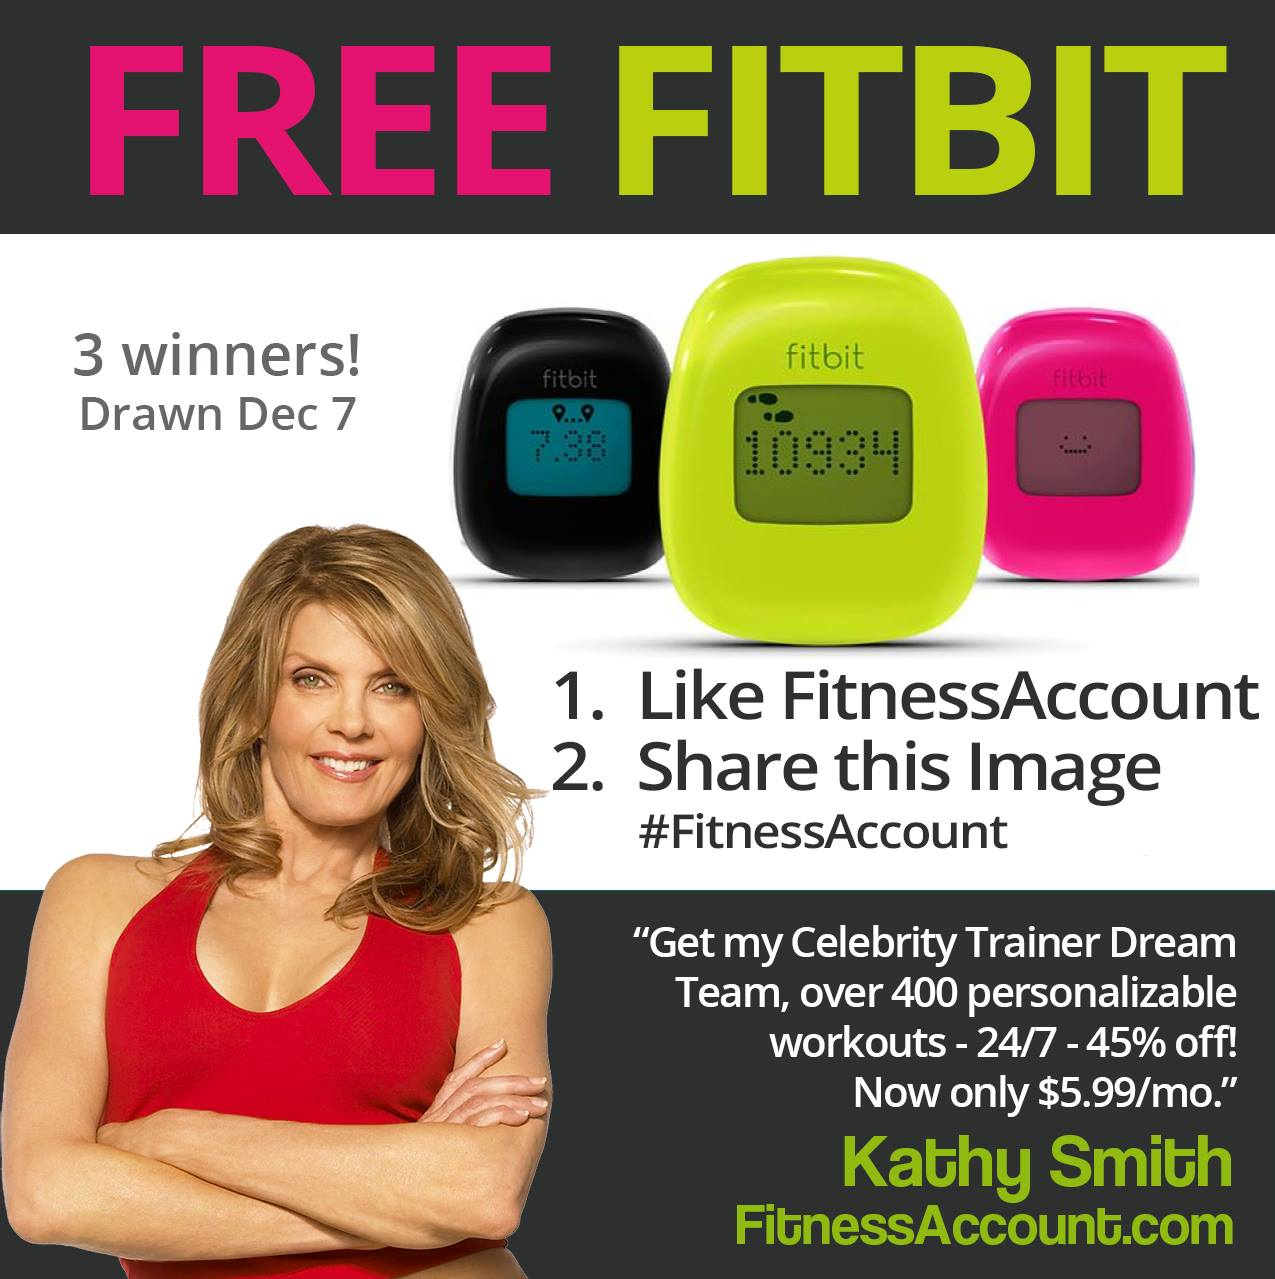 FITBIT GIVEAWAY!